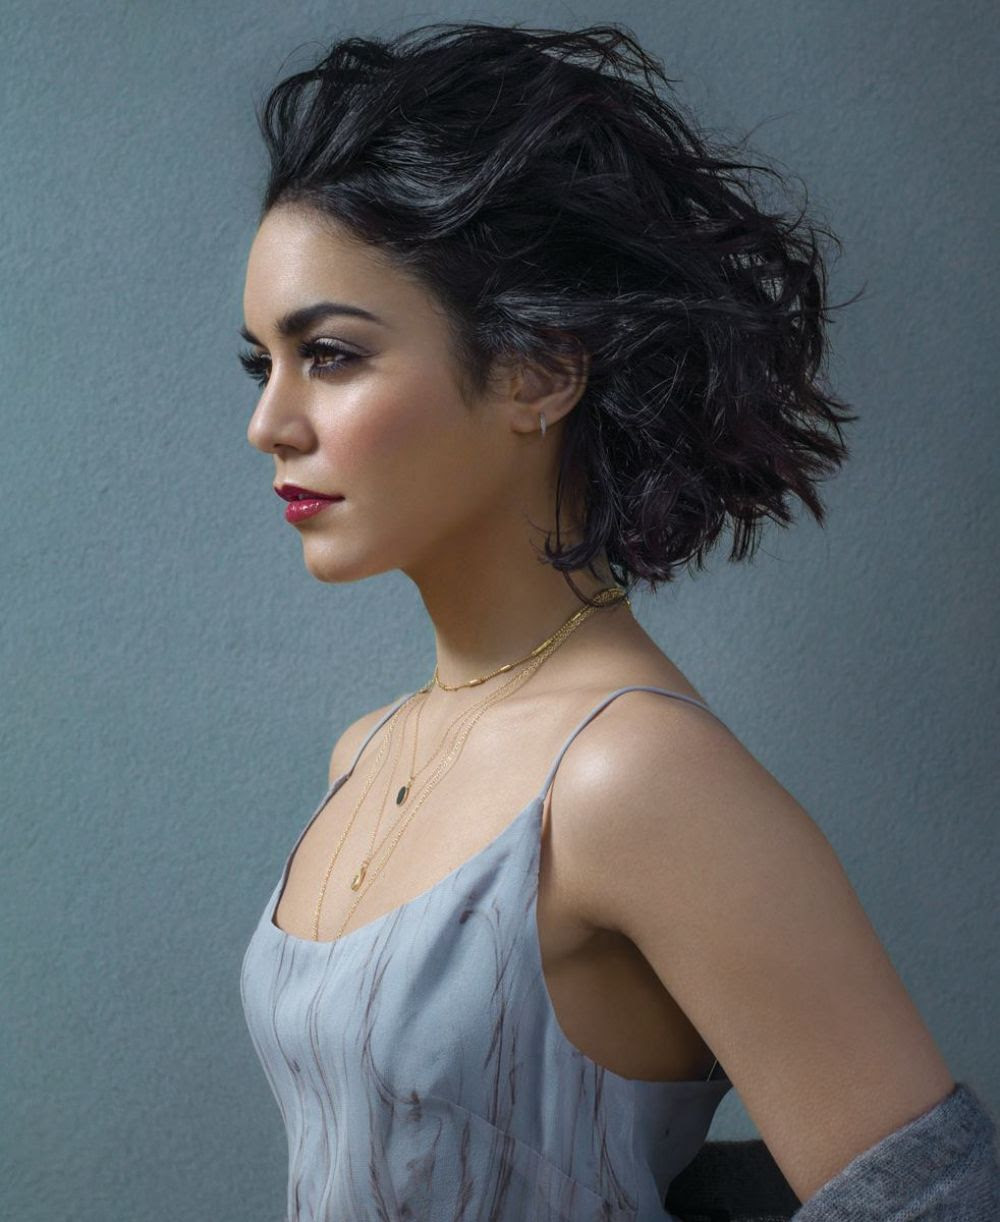 VANESSA HUDGENS in Social Life Magazine, May 2015 Issue